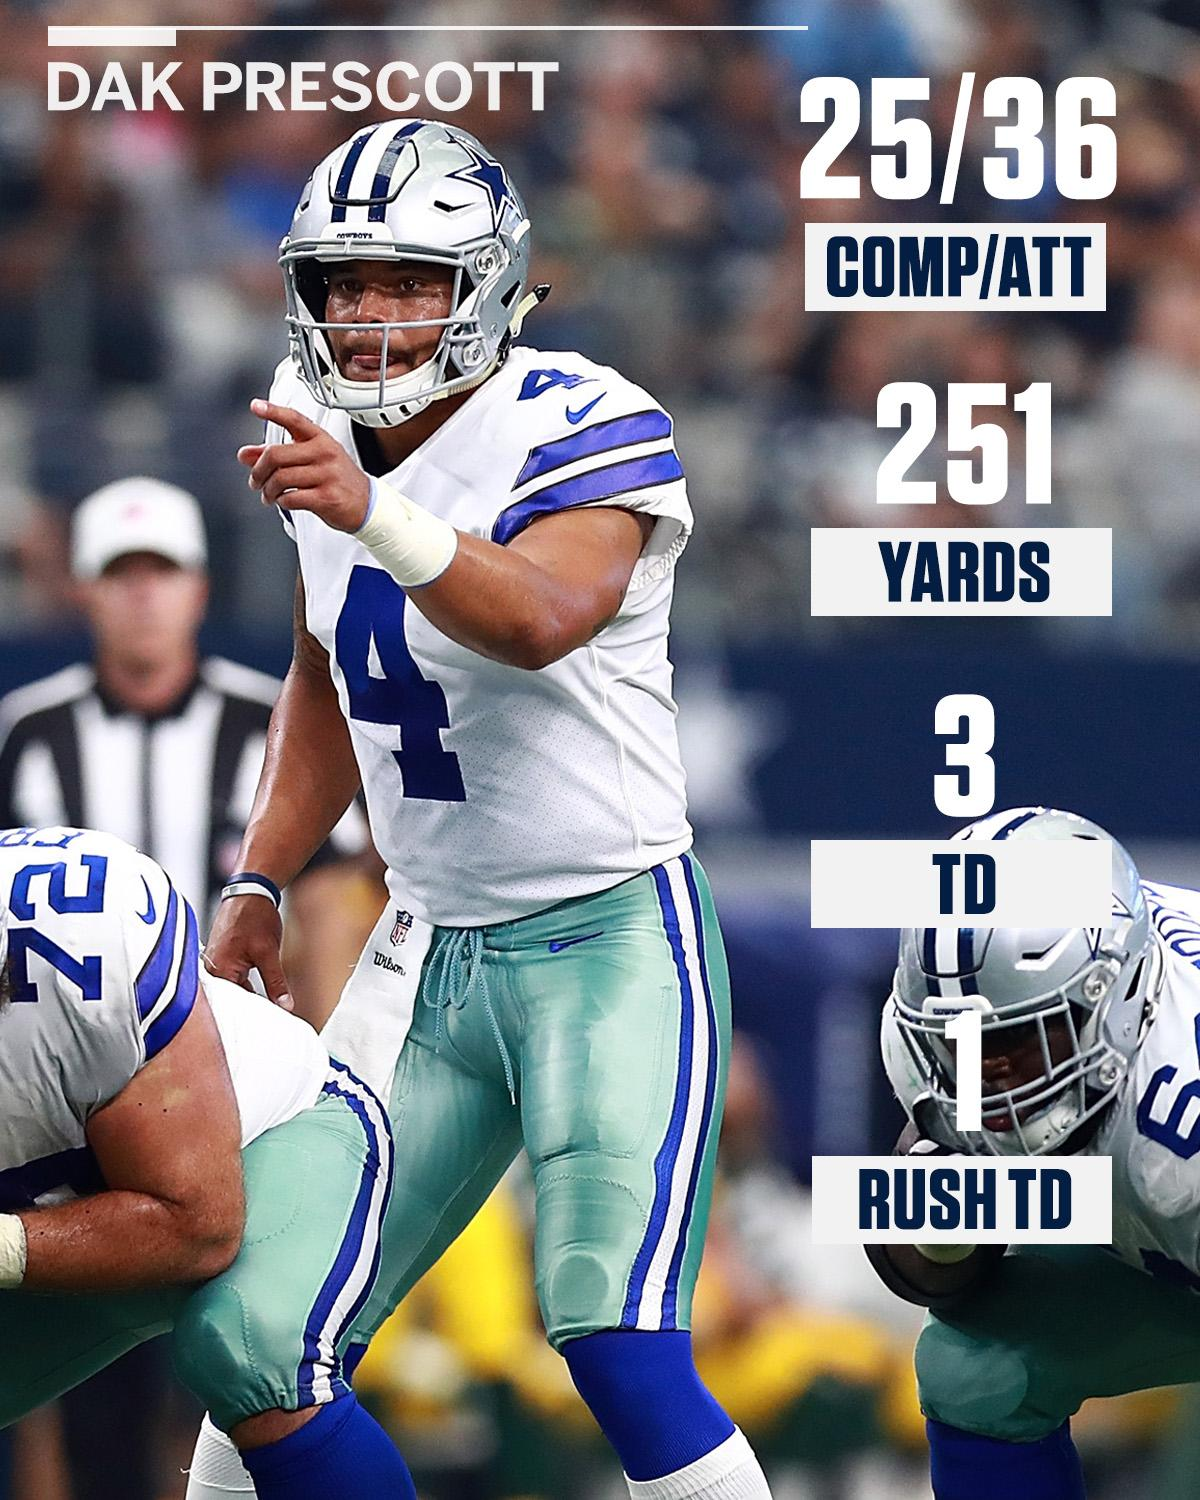 Dak balled out, even in a loss. https://t.co/dkJtndf2yr